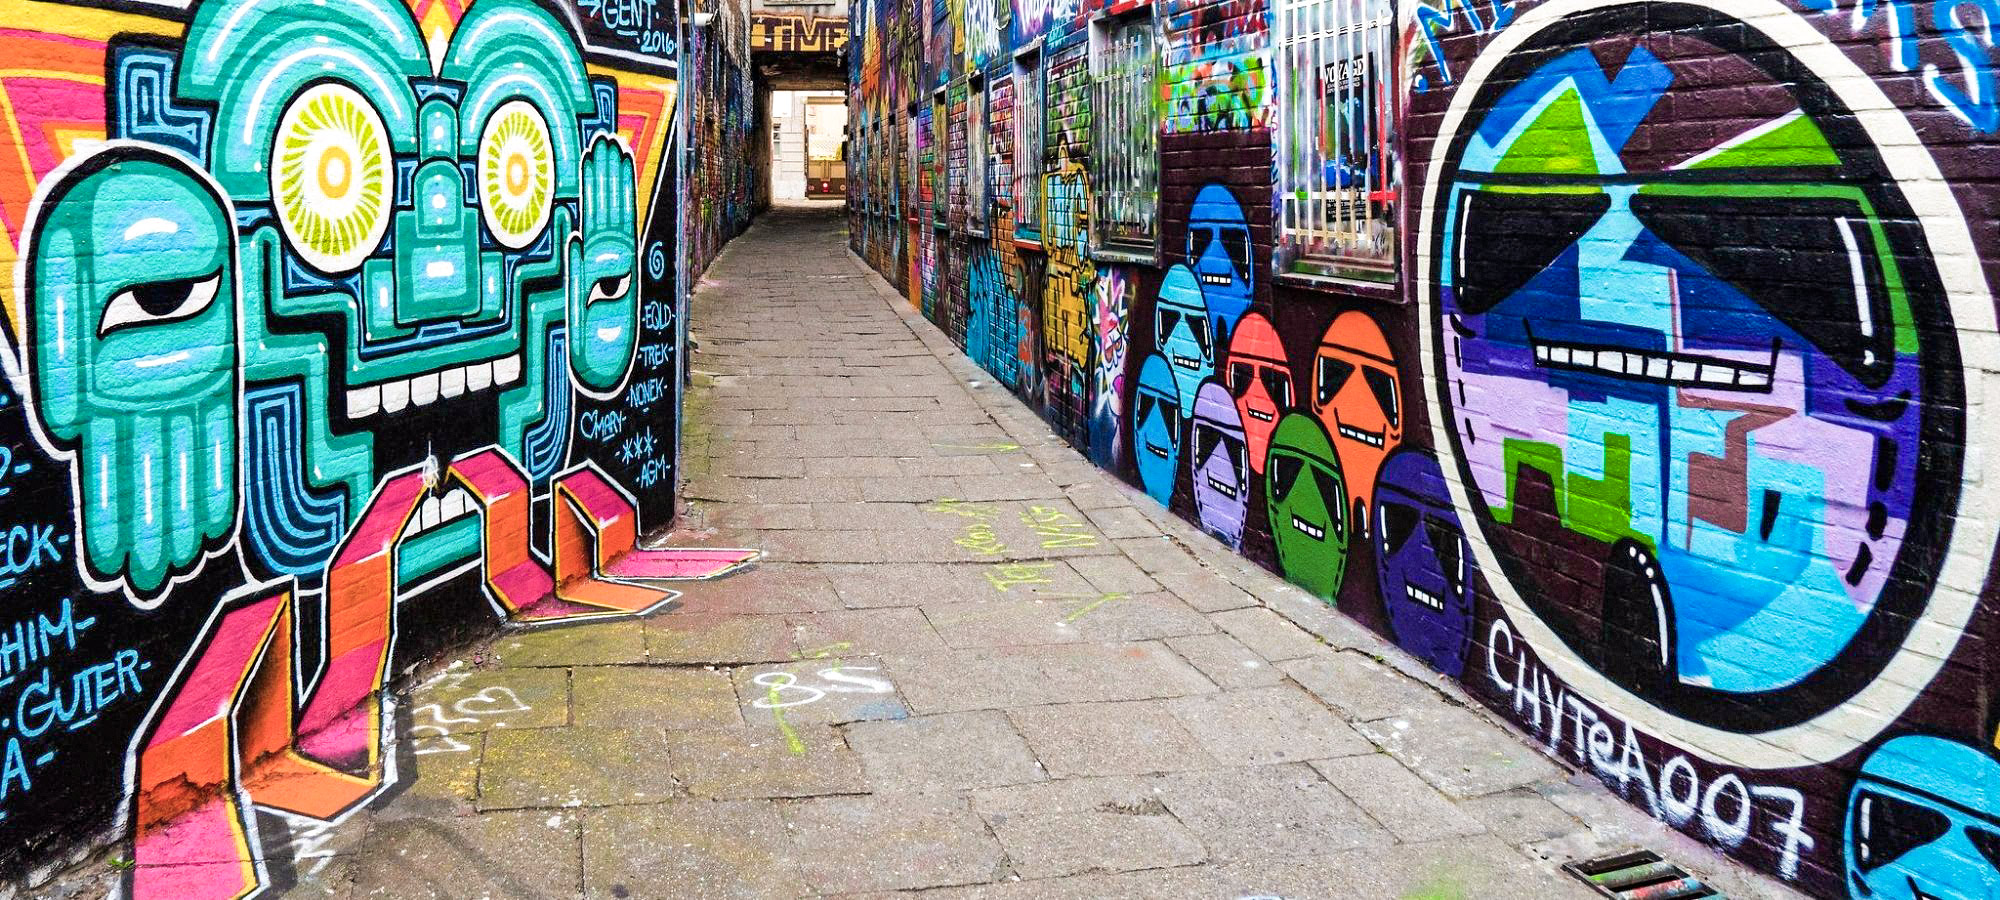 Colourful, futuristic graffiti is painted along the side of the walls of a thin alley